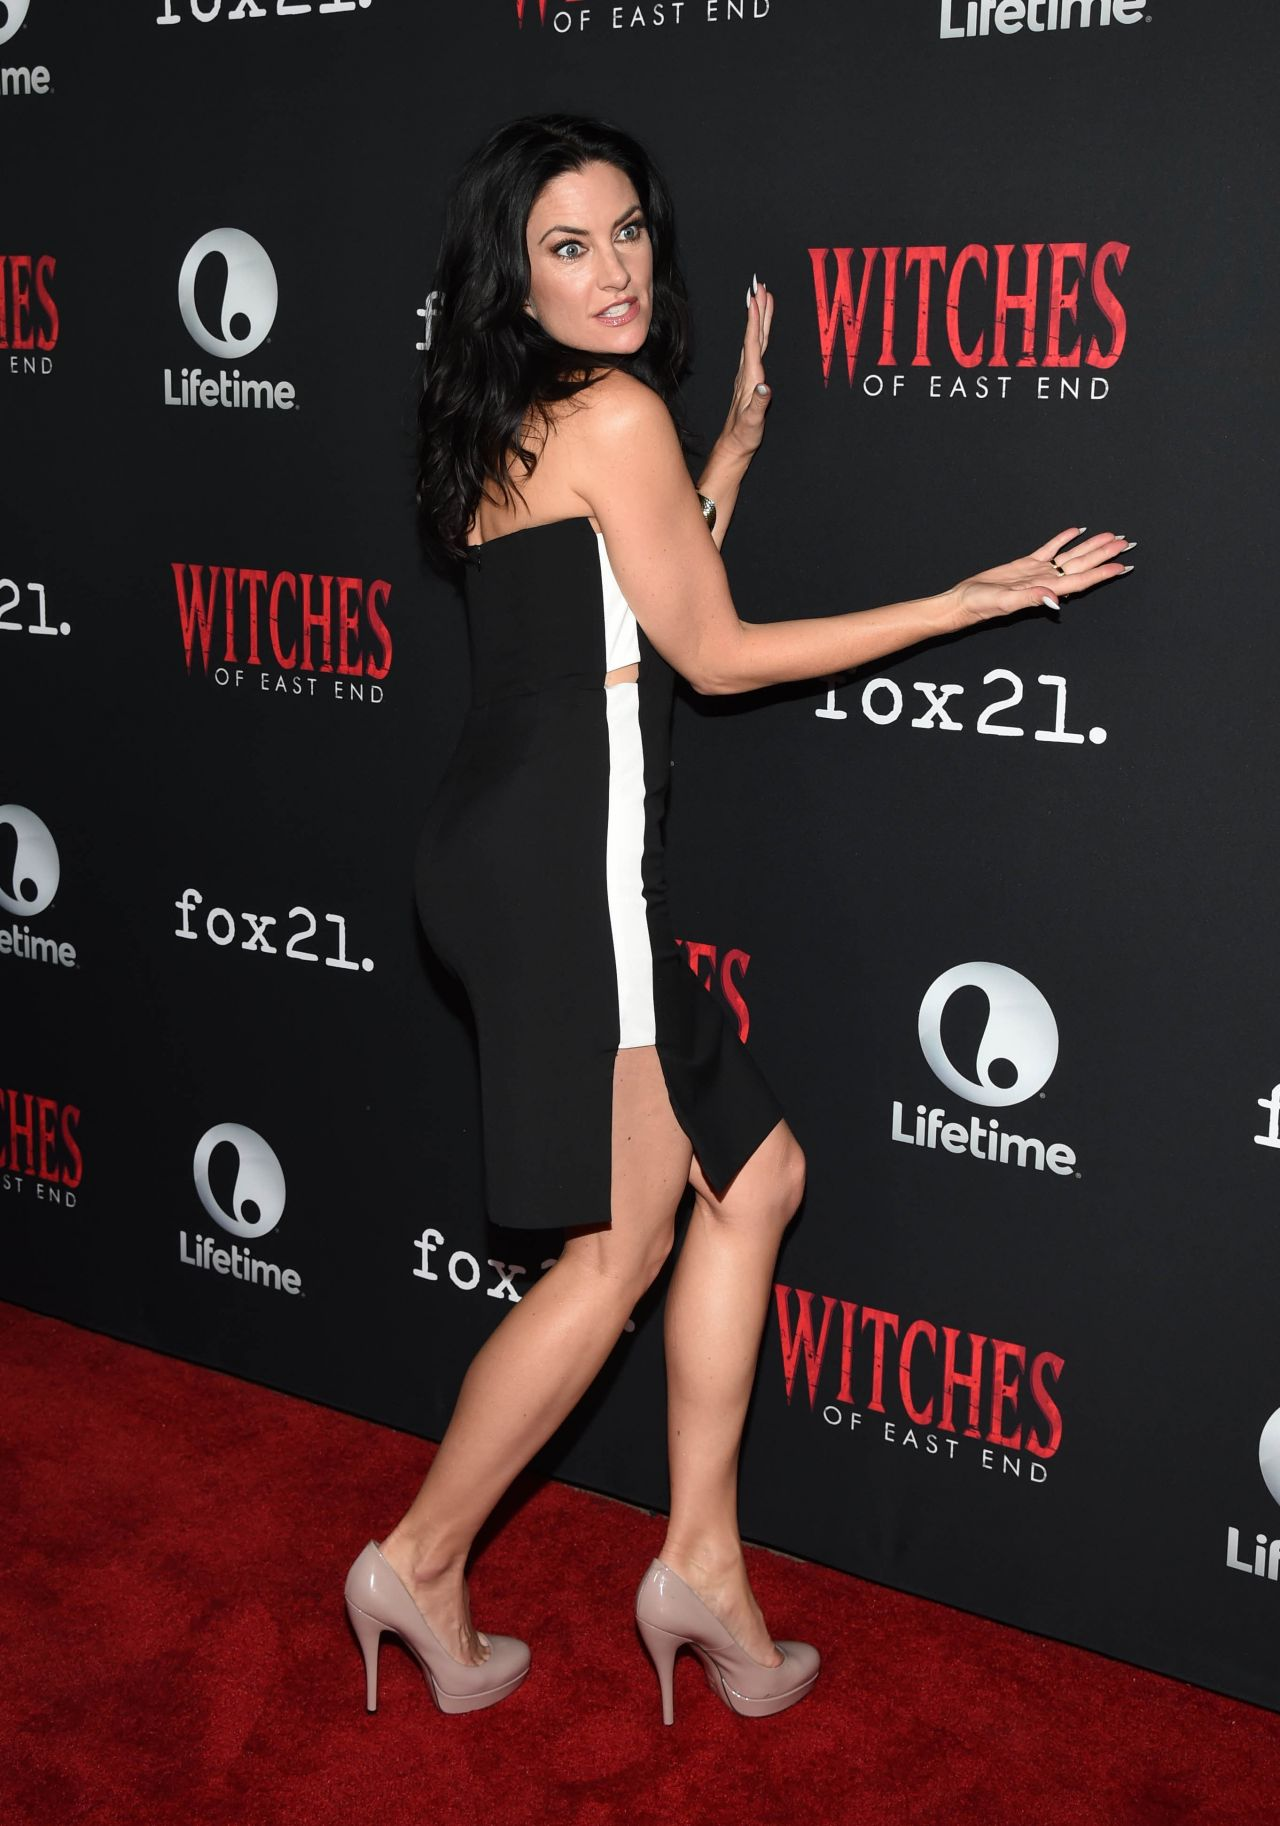 Madchen amick 39 witches of east end 39 season 2 premiere for Kinderzimmermobel madchen